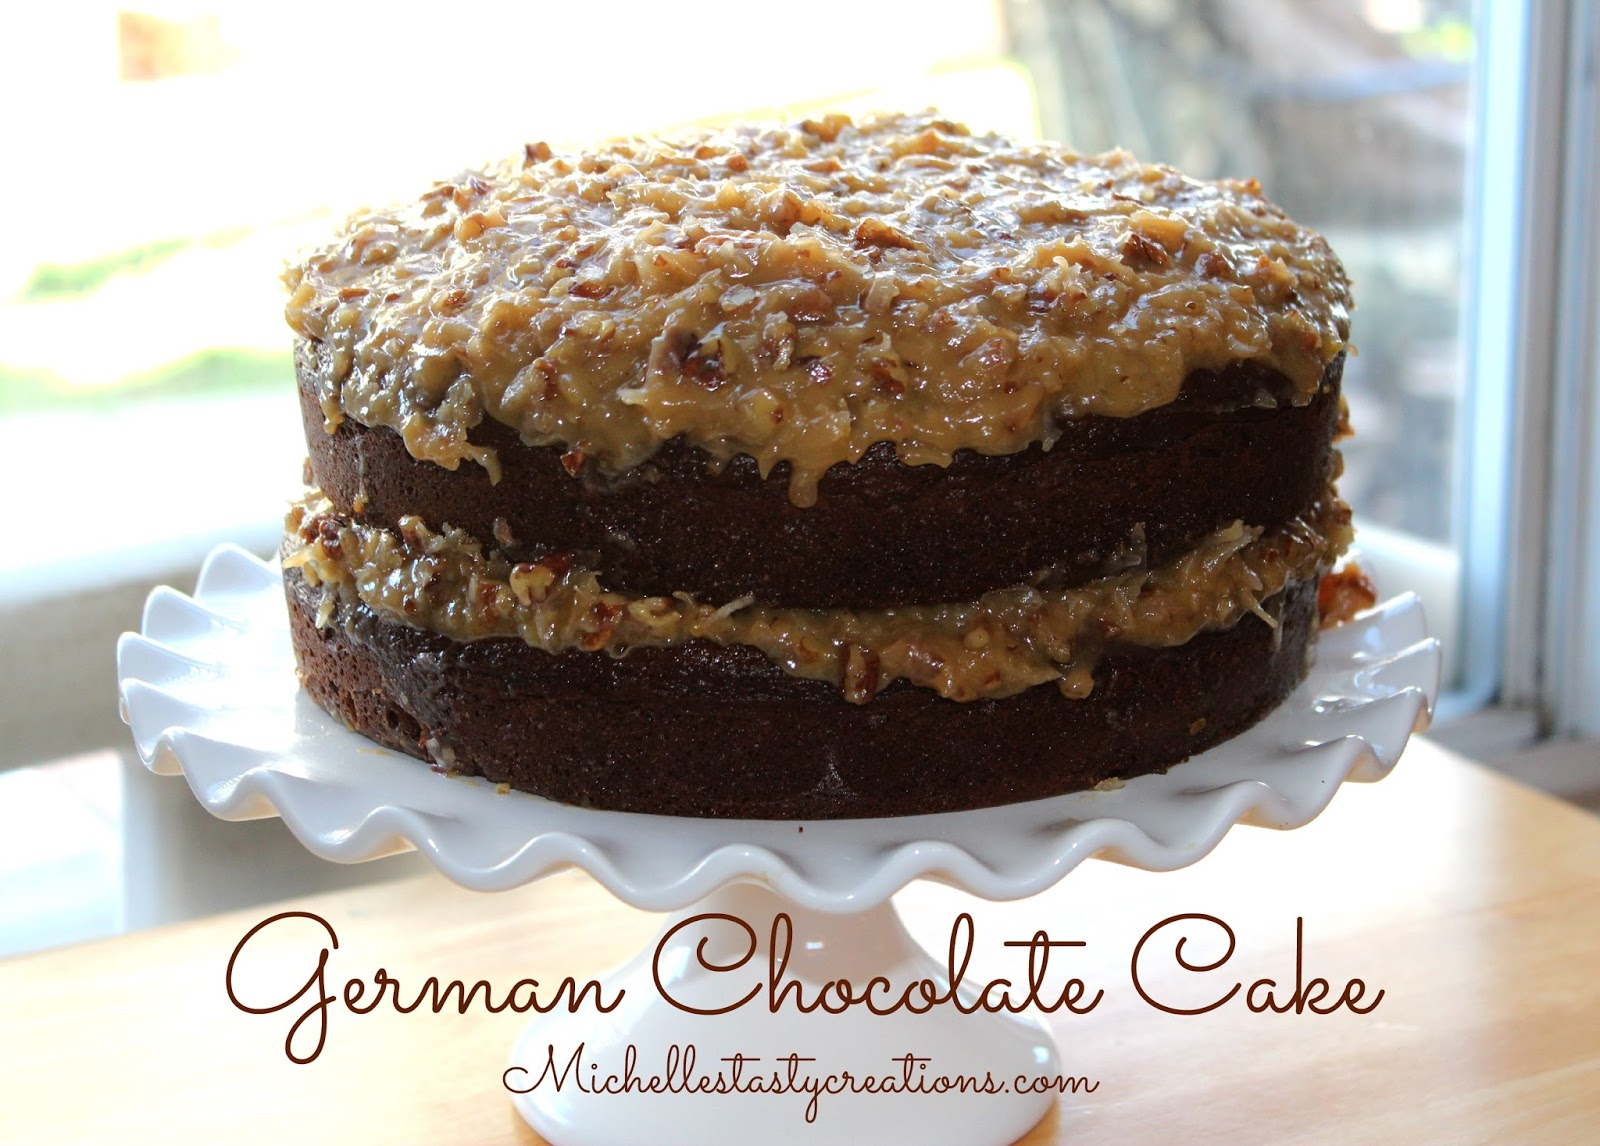 Michelle's Tasty Creations: German Chocolate Layer Cake